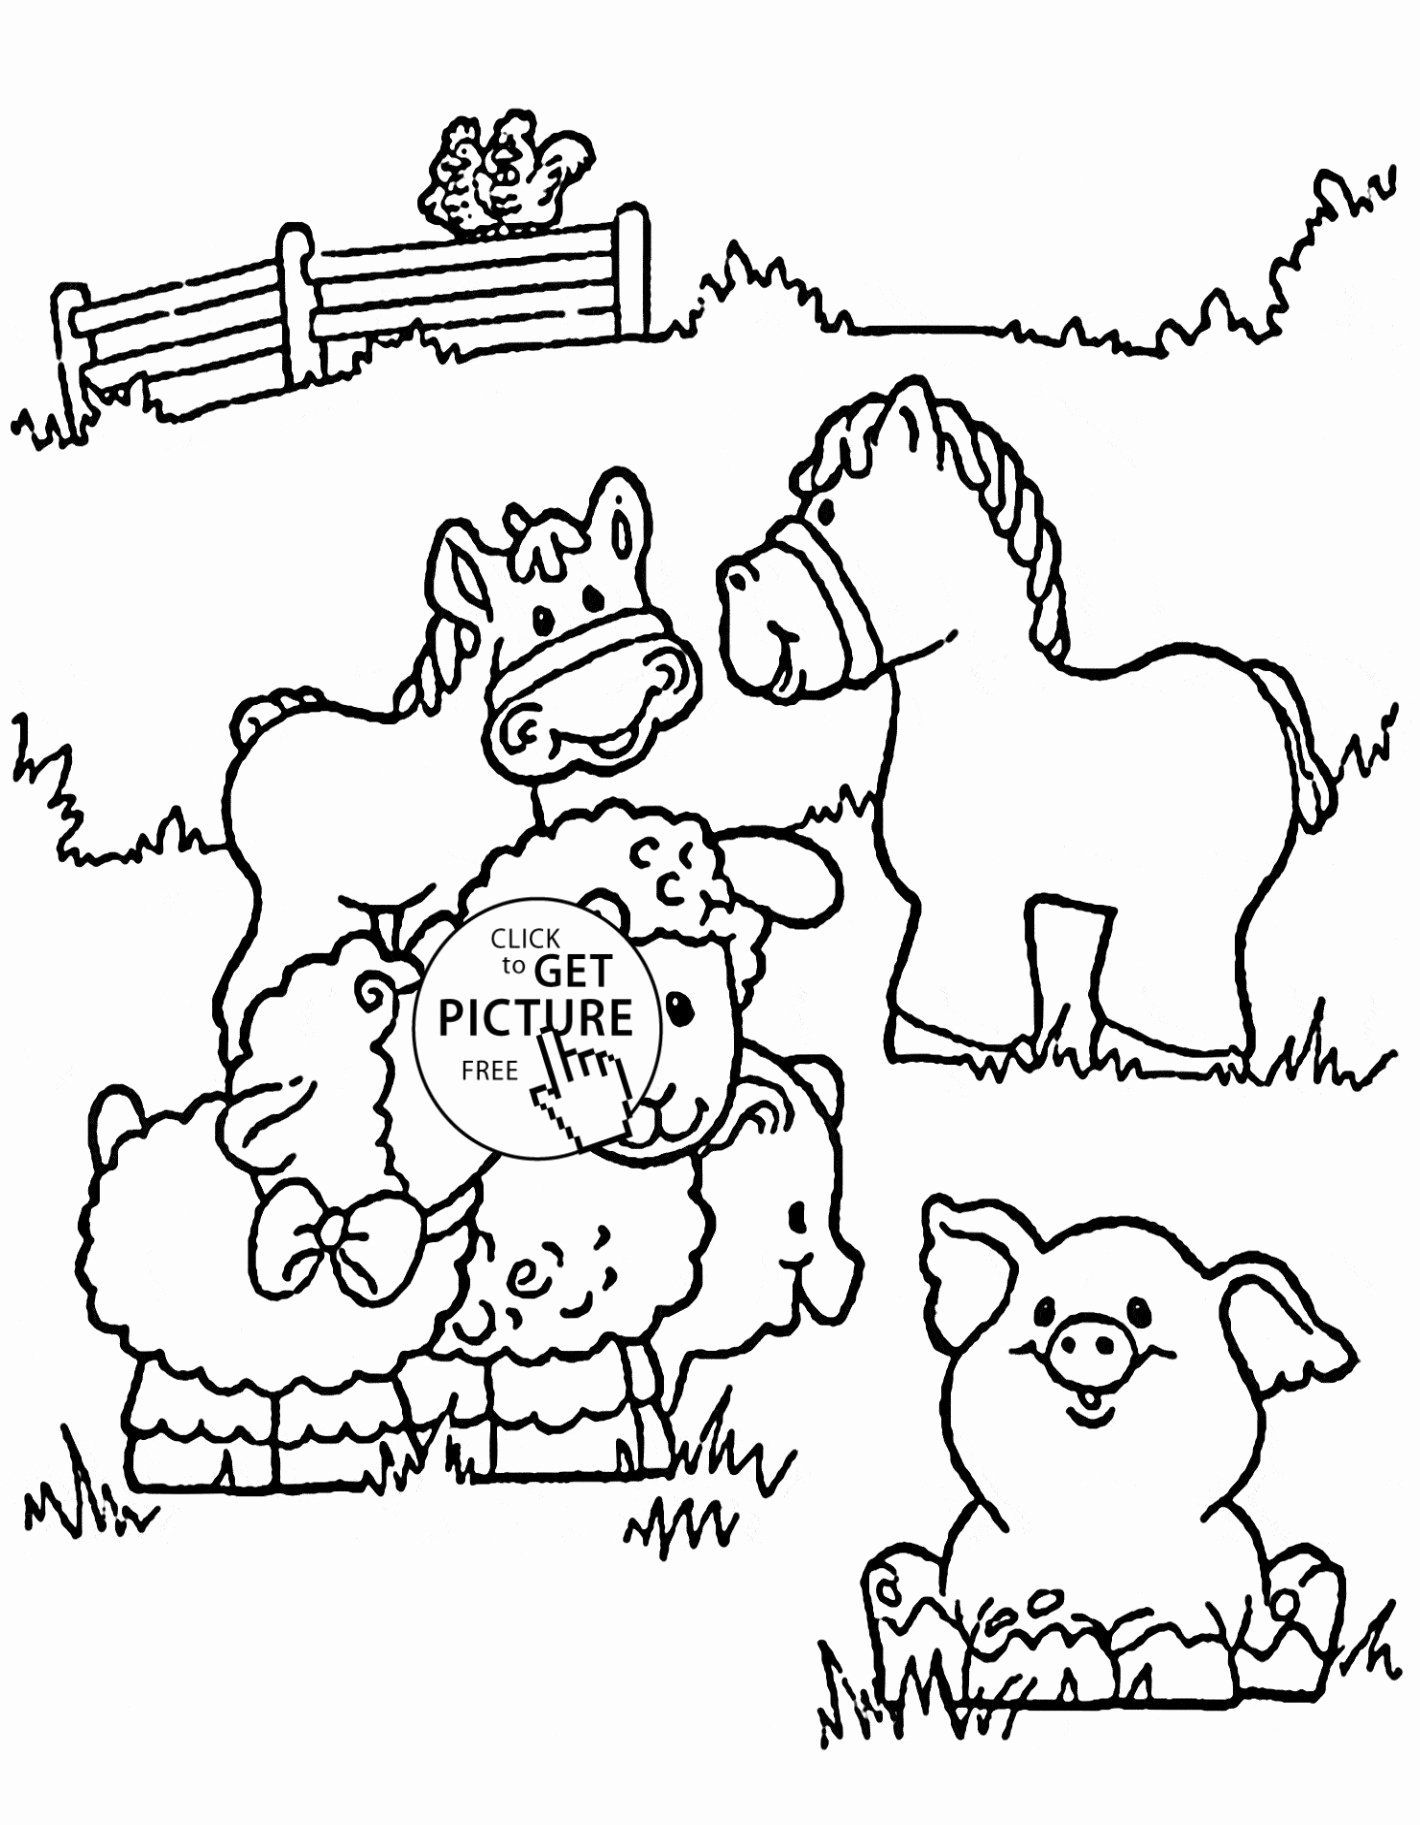 Coloring Cartoons Peppa Pig Unique Coloring Pages For Kids Best Vases Flower Vase Coloring Page In 2020 Farm Coloring Pages Animal Coloring Pages Horse Coloring Pages